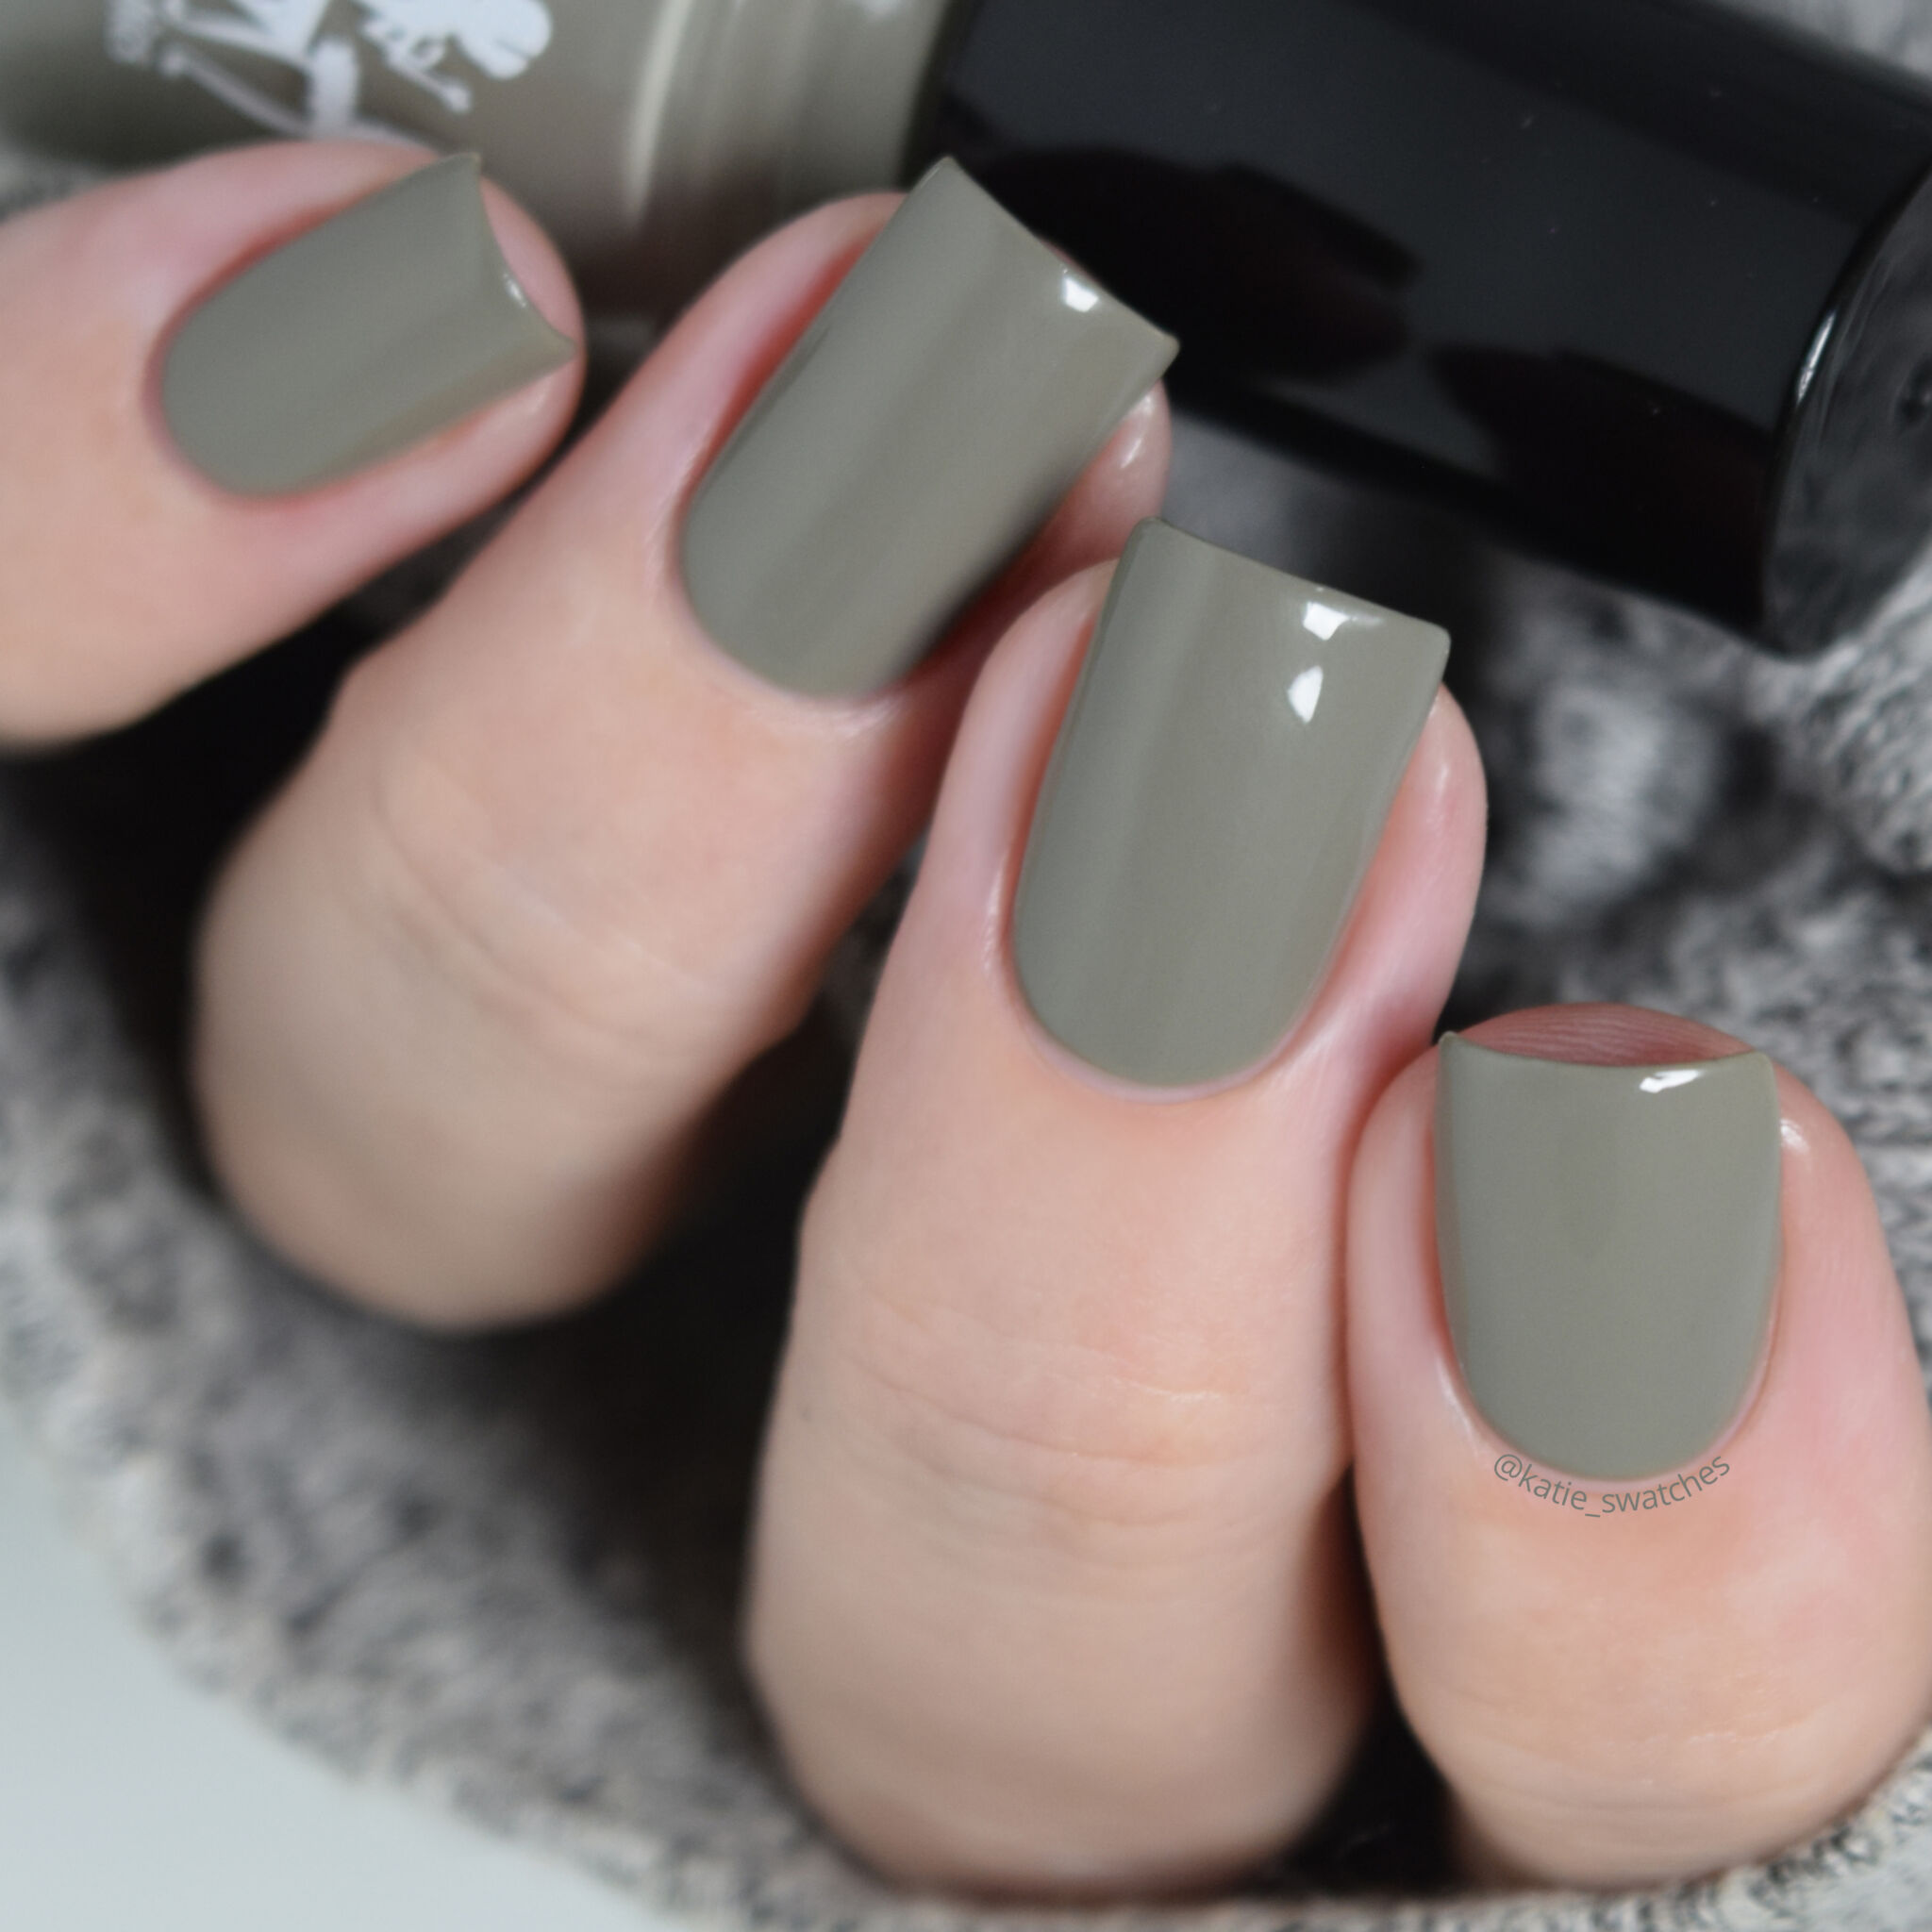 Girly Bits - Sage Against the Machine medium sage green crelly nail polish swatch